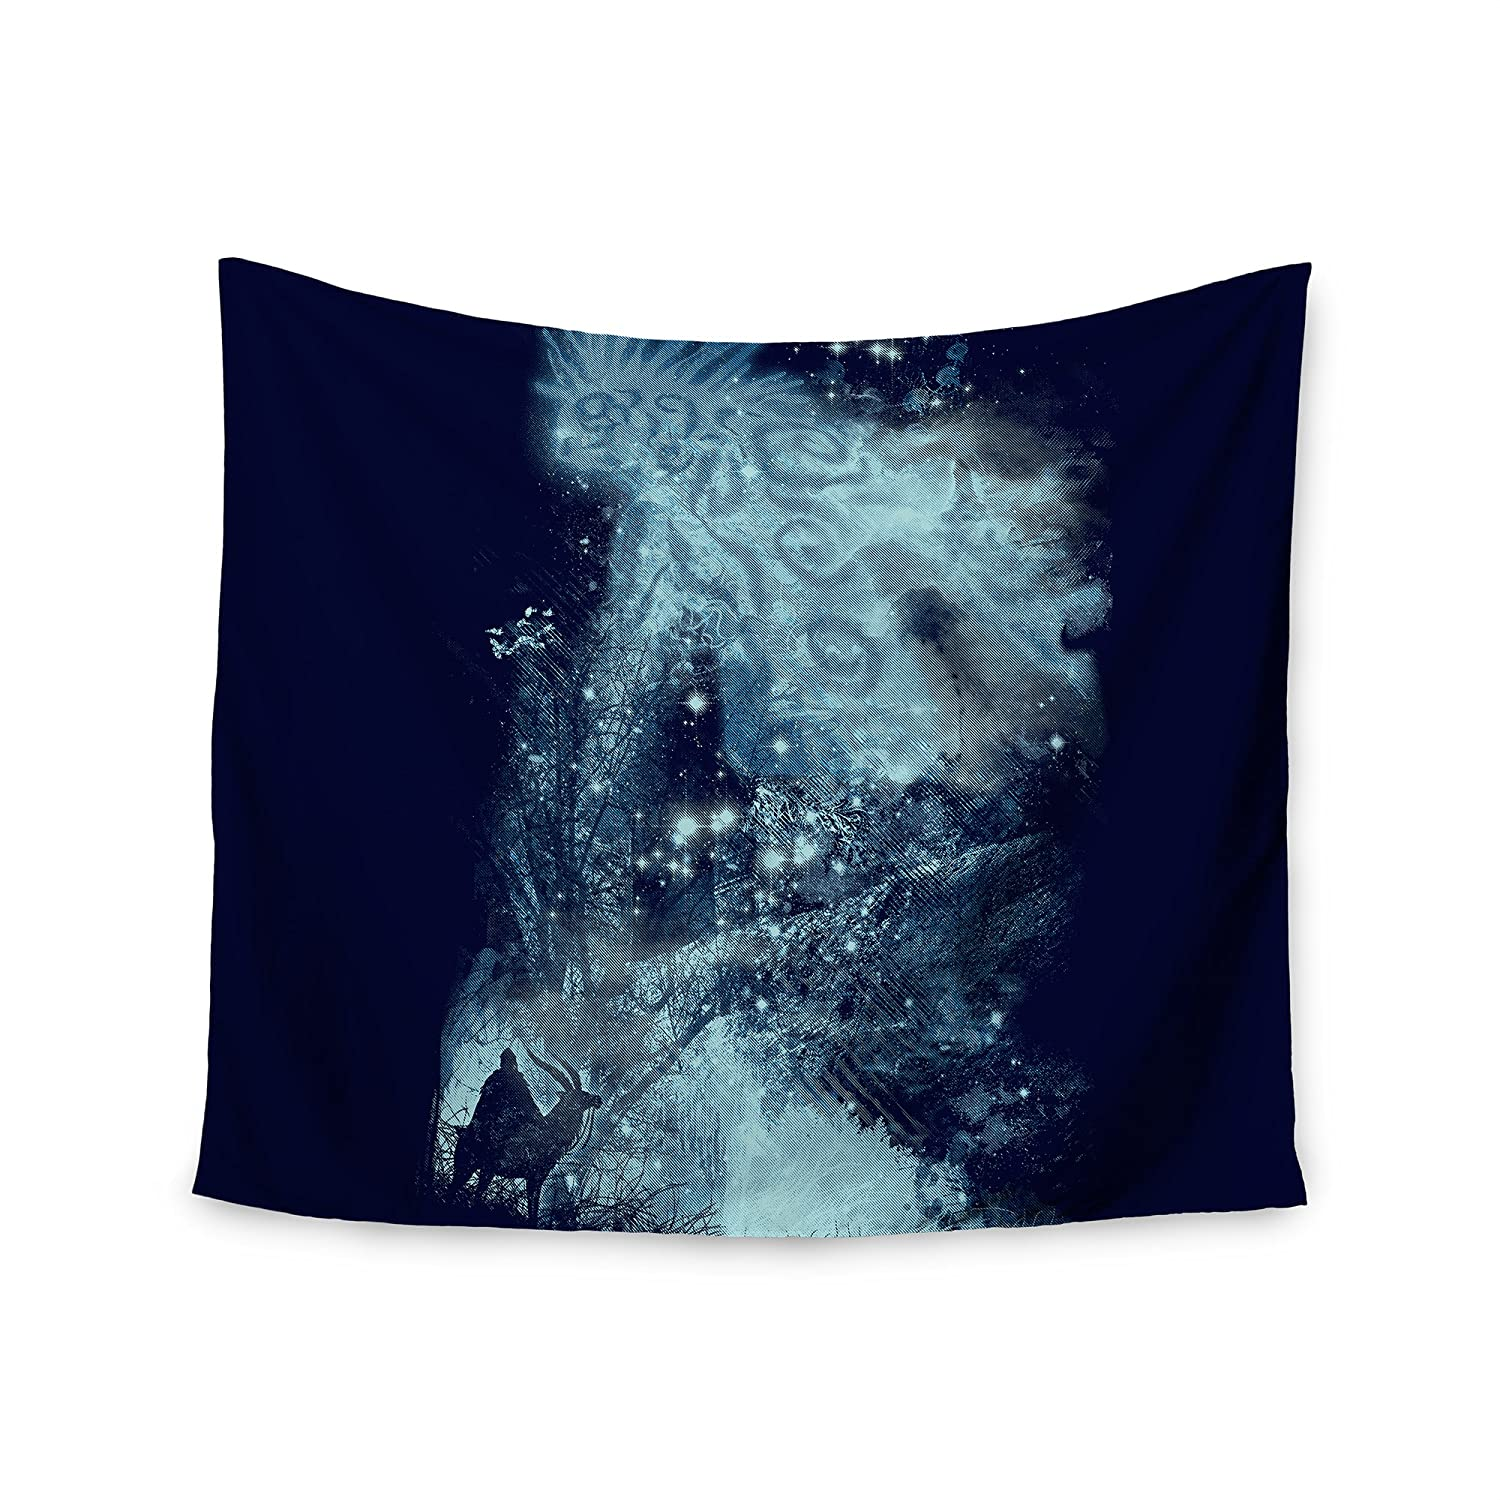 51 x 60 Kess InHouse Frederic Levy-Hadida Forest Spirit Rising Blue Fantasy Wall Tapestry